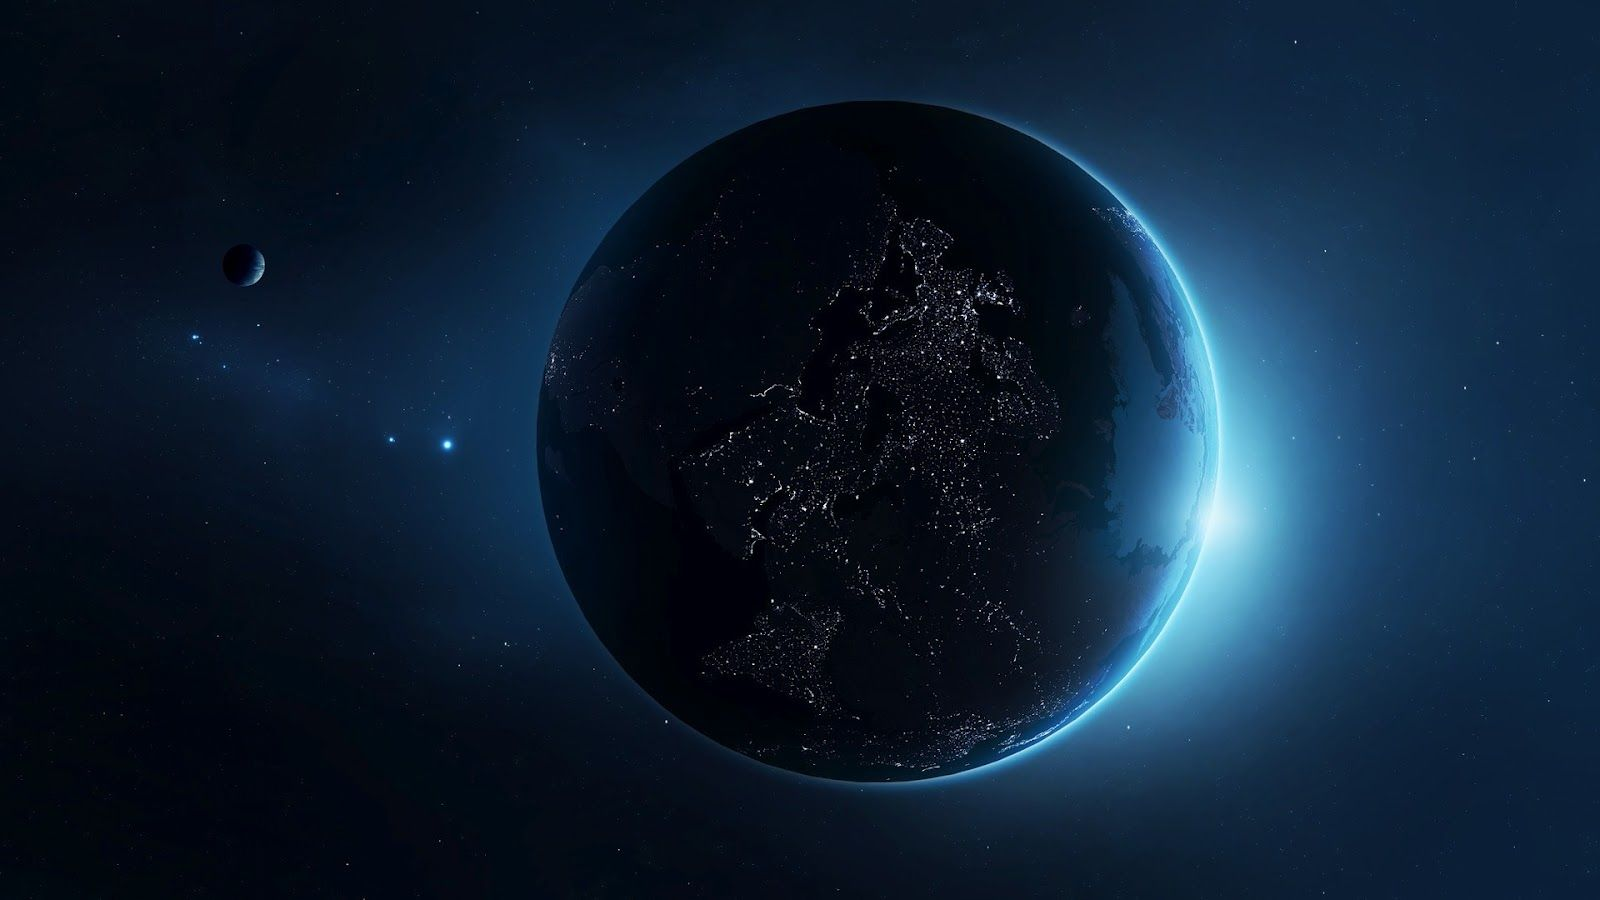 Planet Earth From Space At Night High Resolution Widescreen With